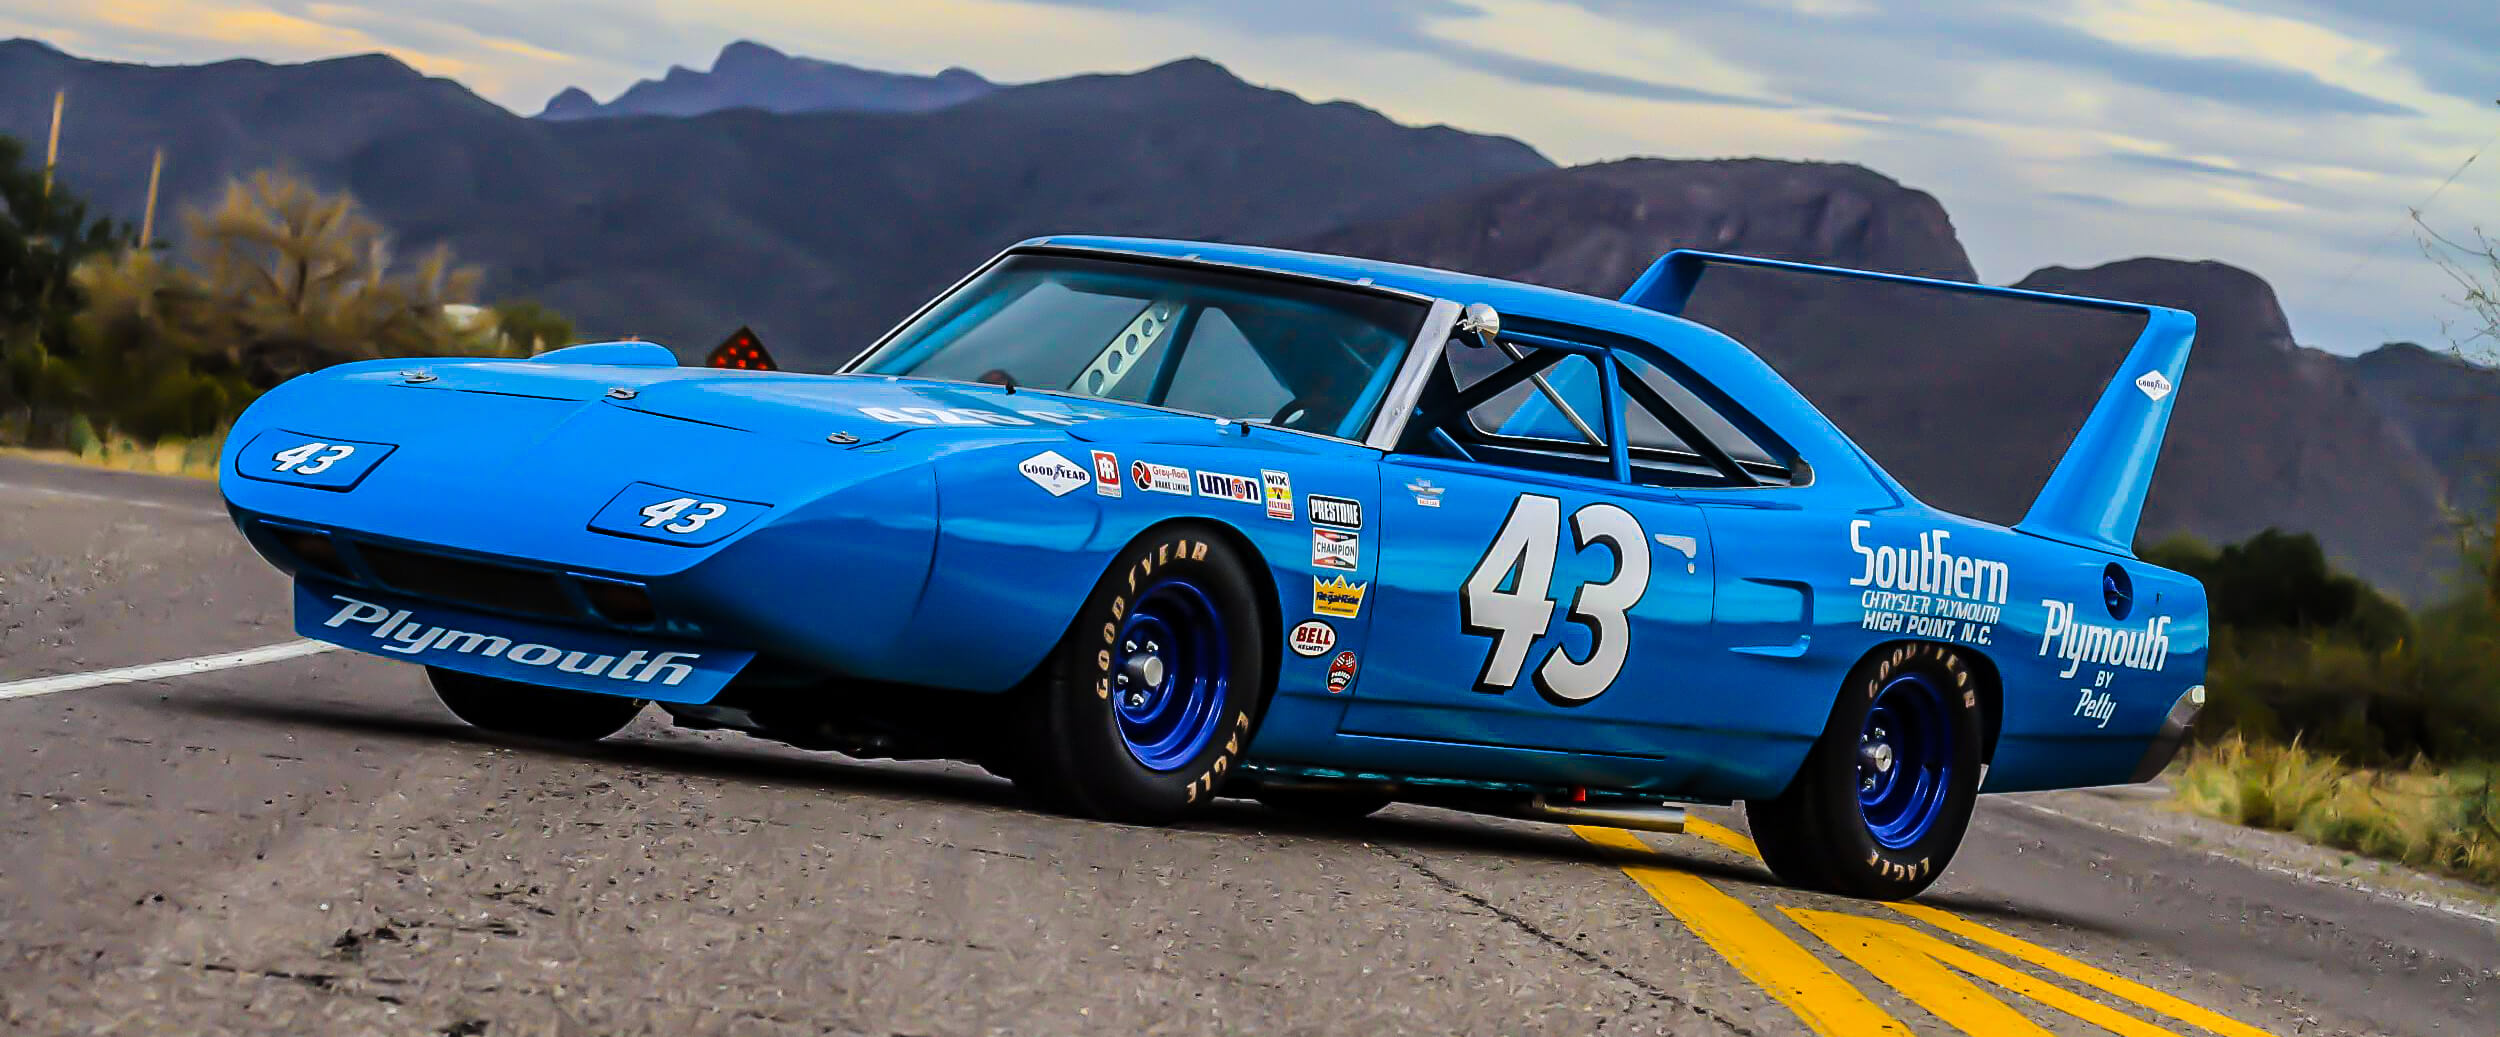 Plymouth Charger Superbird